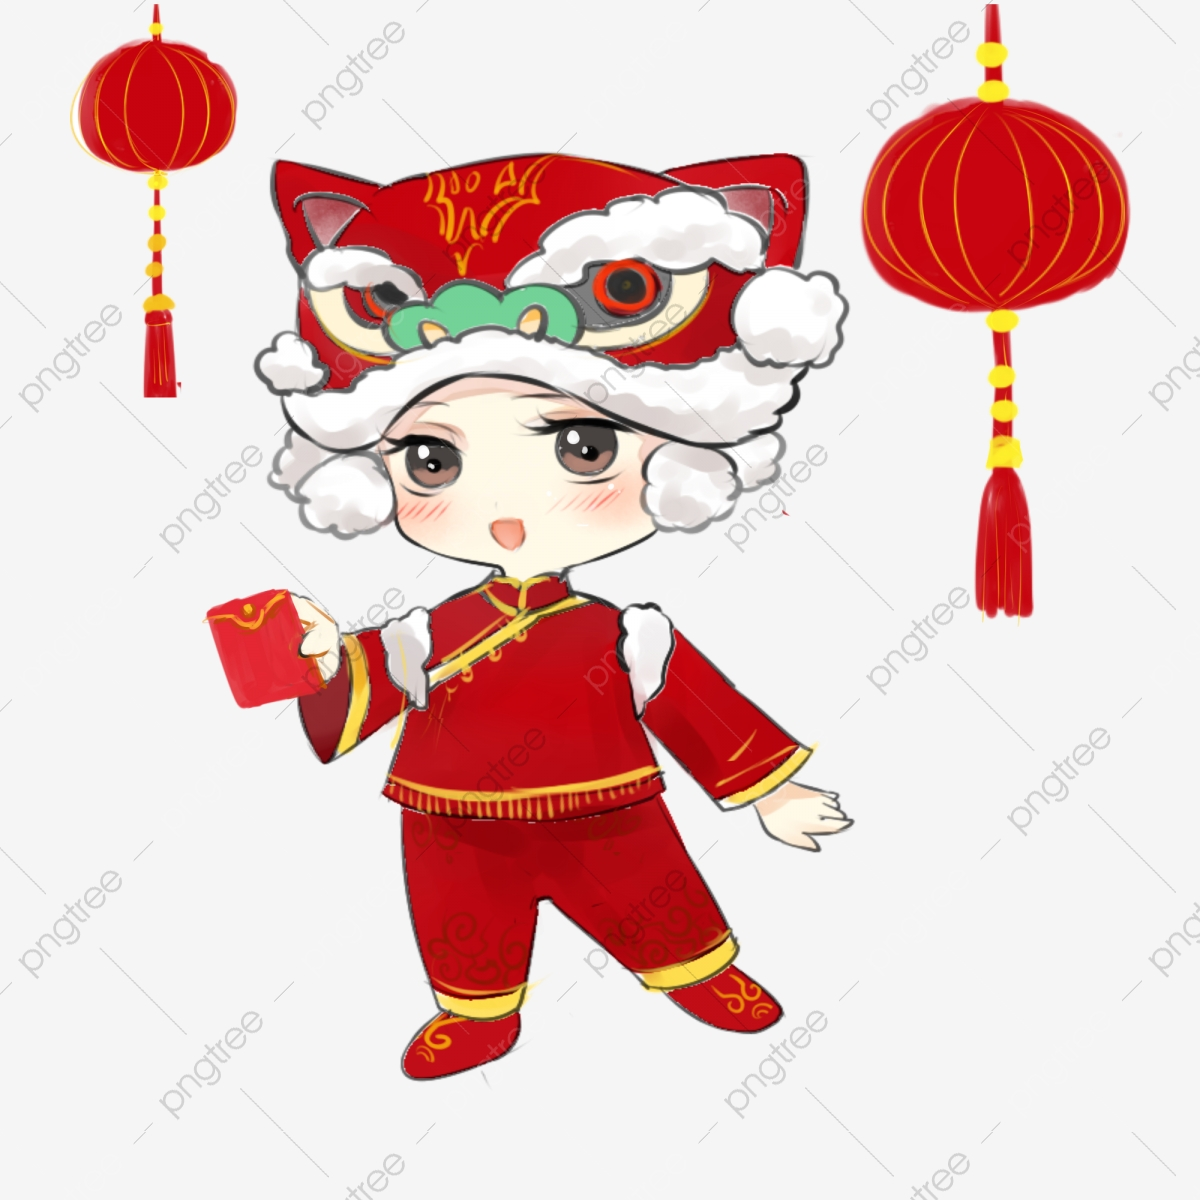 new year light knot hand drawn cartoon kids tiger head cap exorcism red envelope china red png transparent clipart image and psd file for free download https pngtree com freepng new year light knot hand drawn cartoon kids tiger head cap 3956480 html